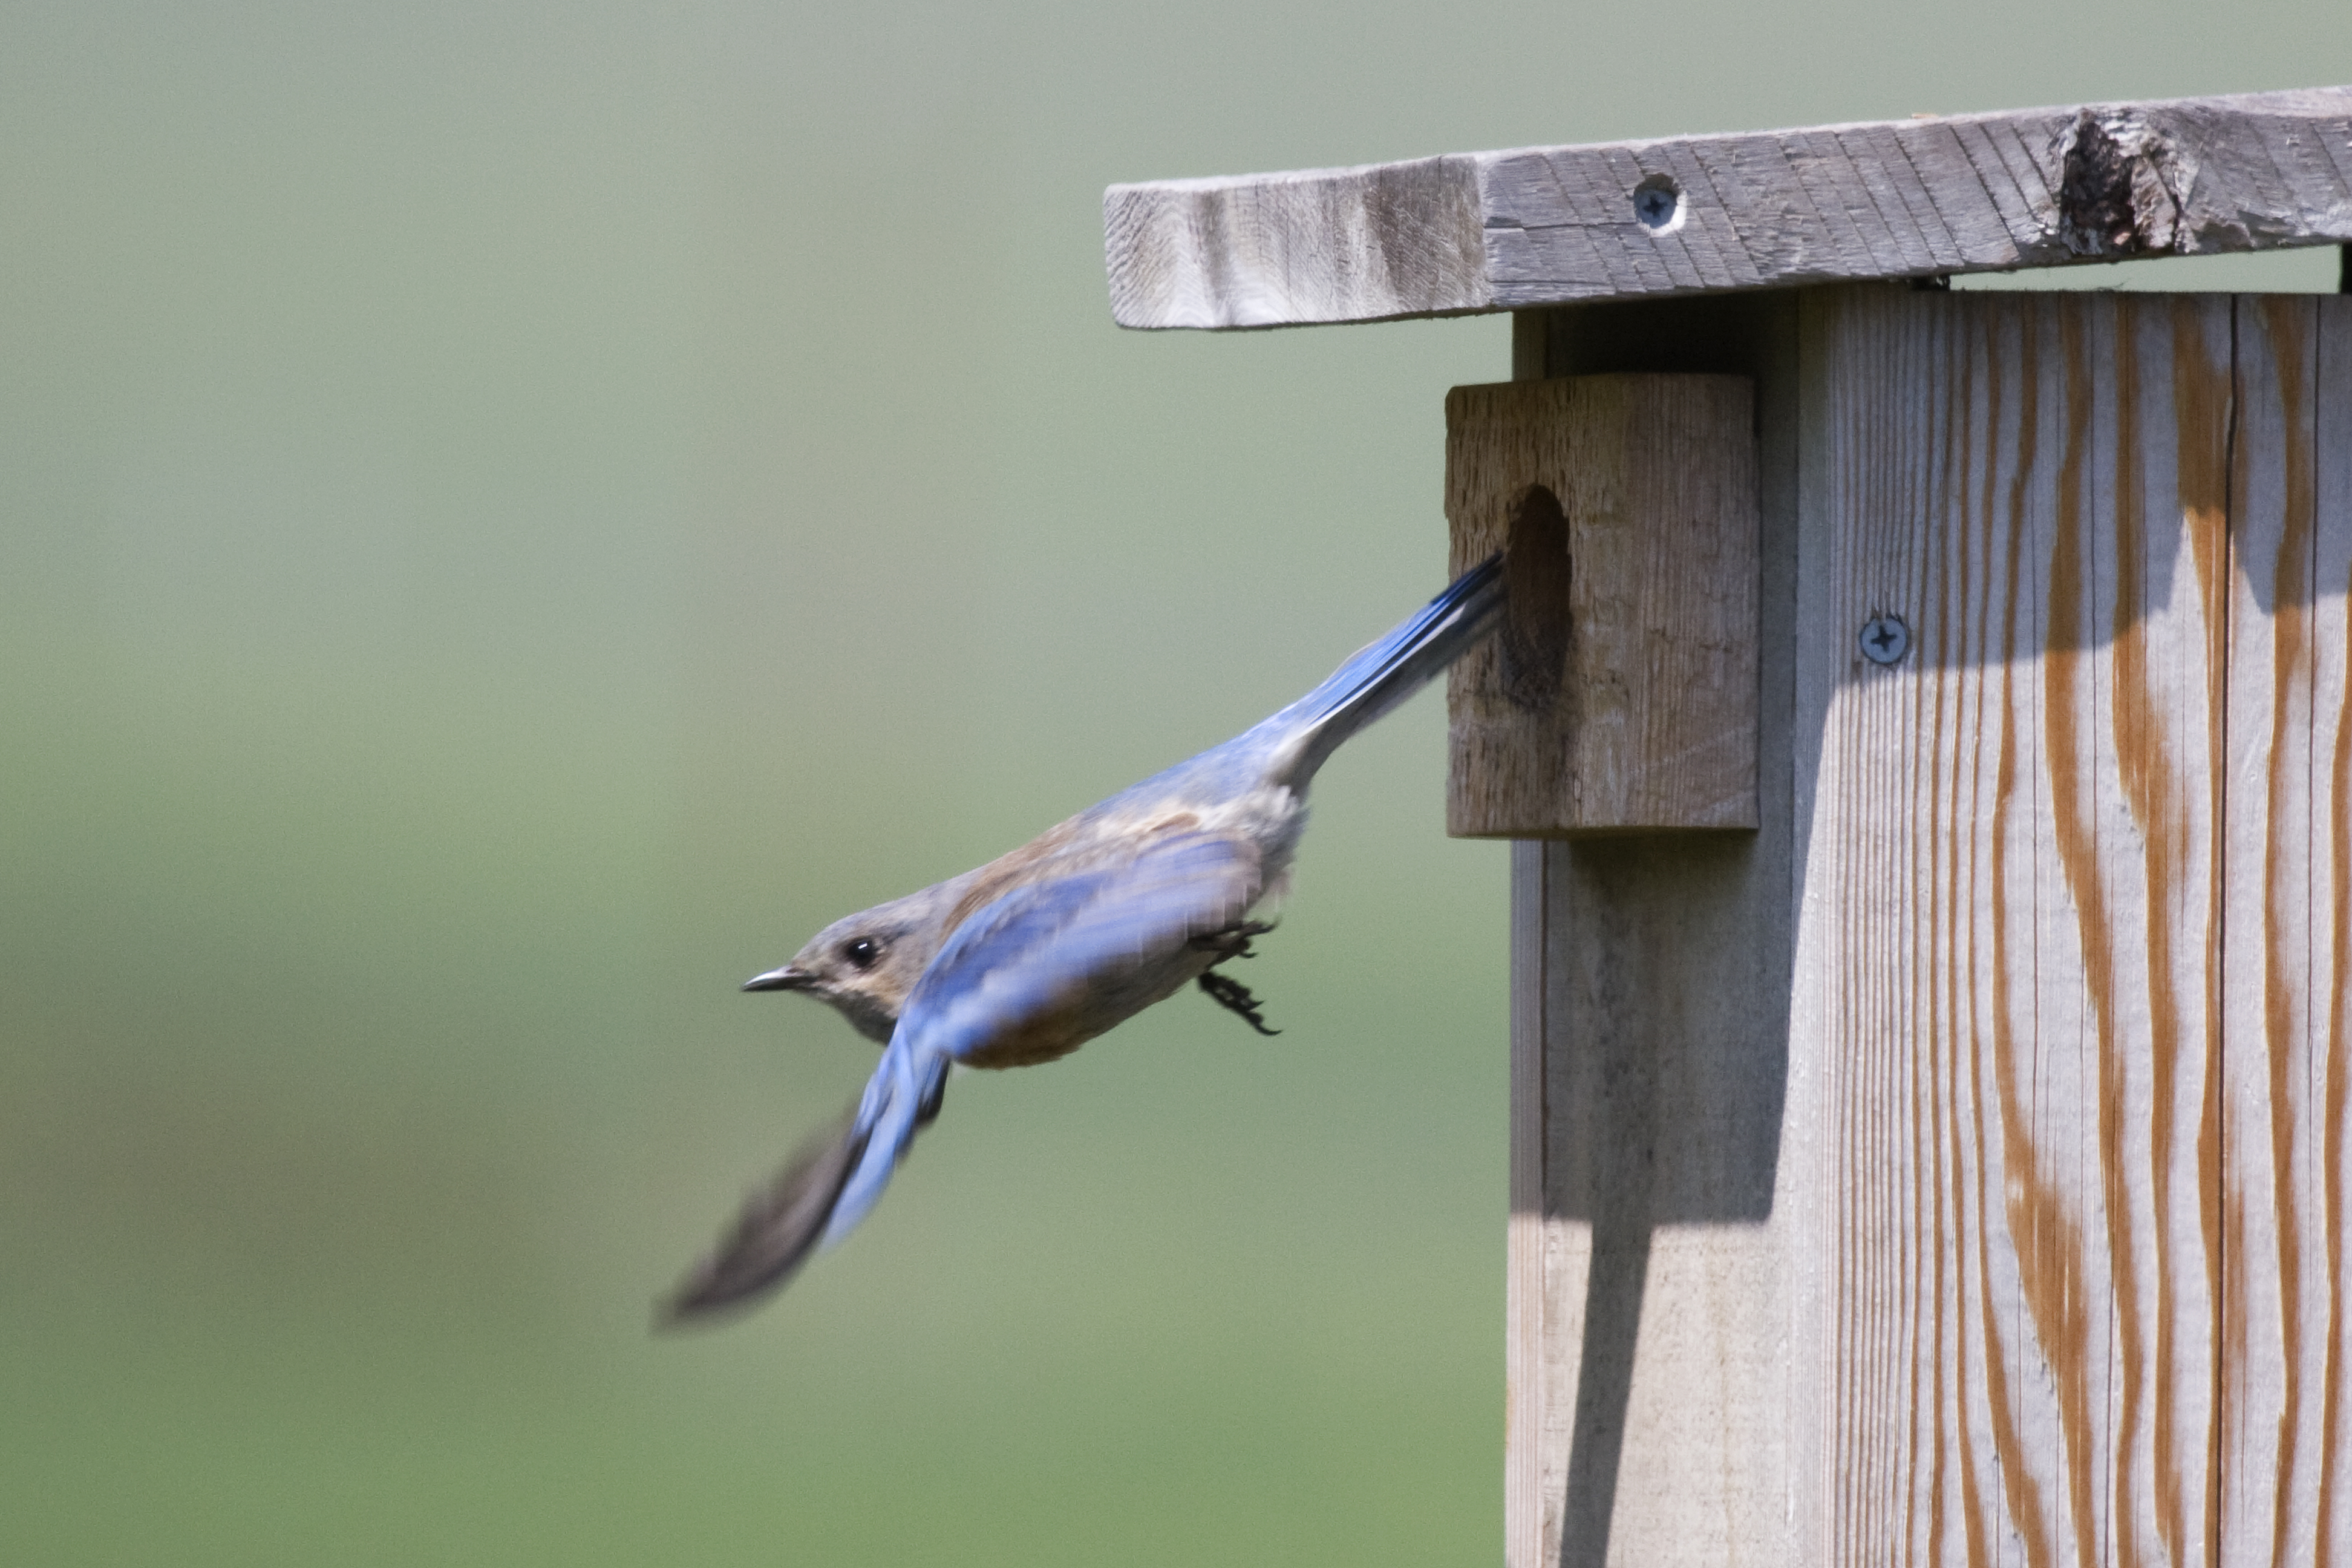 http://commons.wikimedia.org/wiki/File:Western_Bluebird_leaving_nest_box.jpg